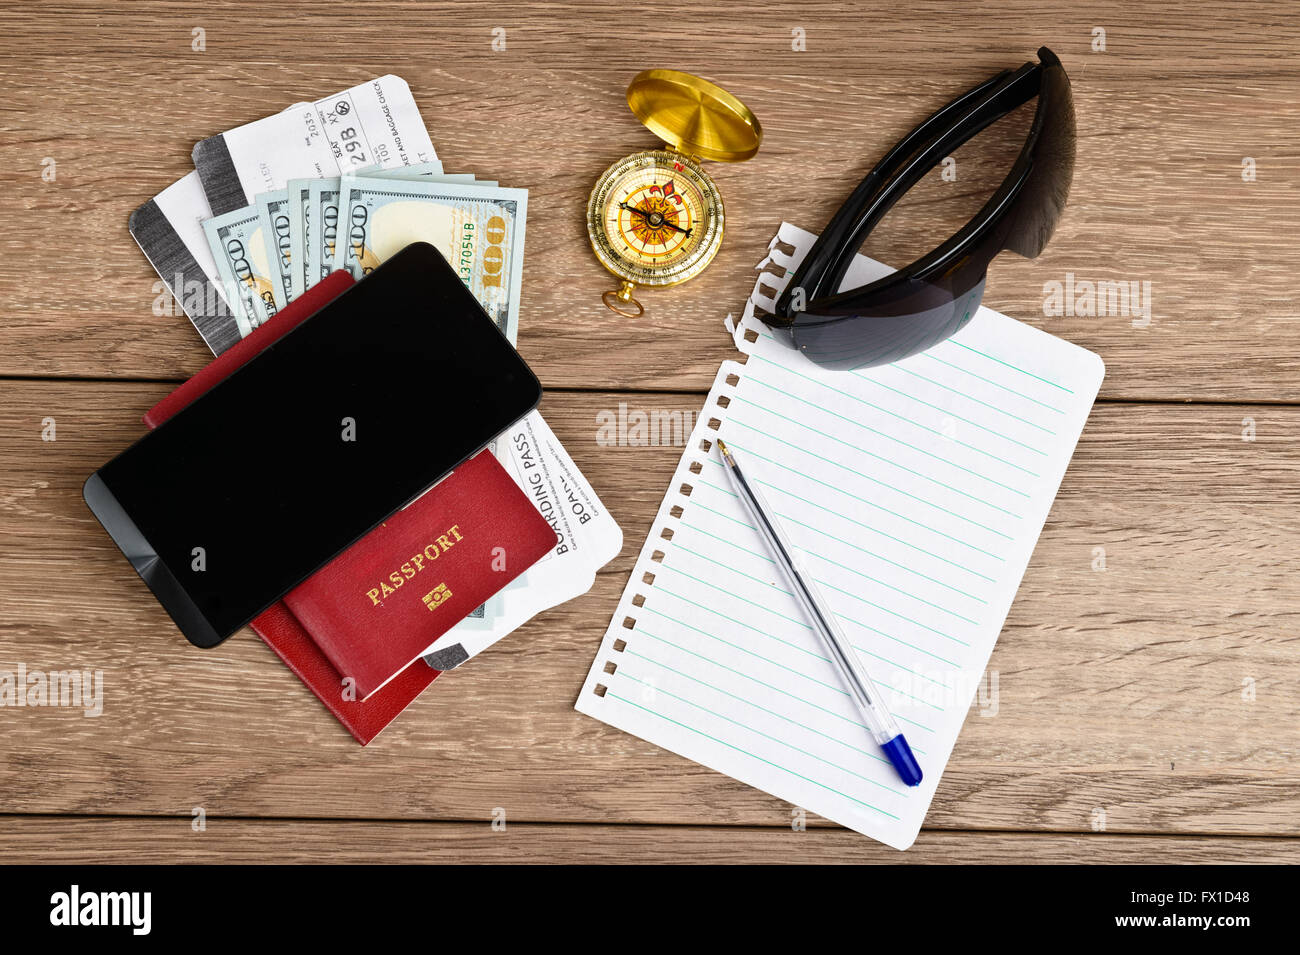 travel stuff on wooden table, top view - Stock Image